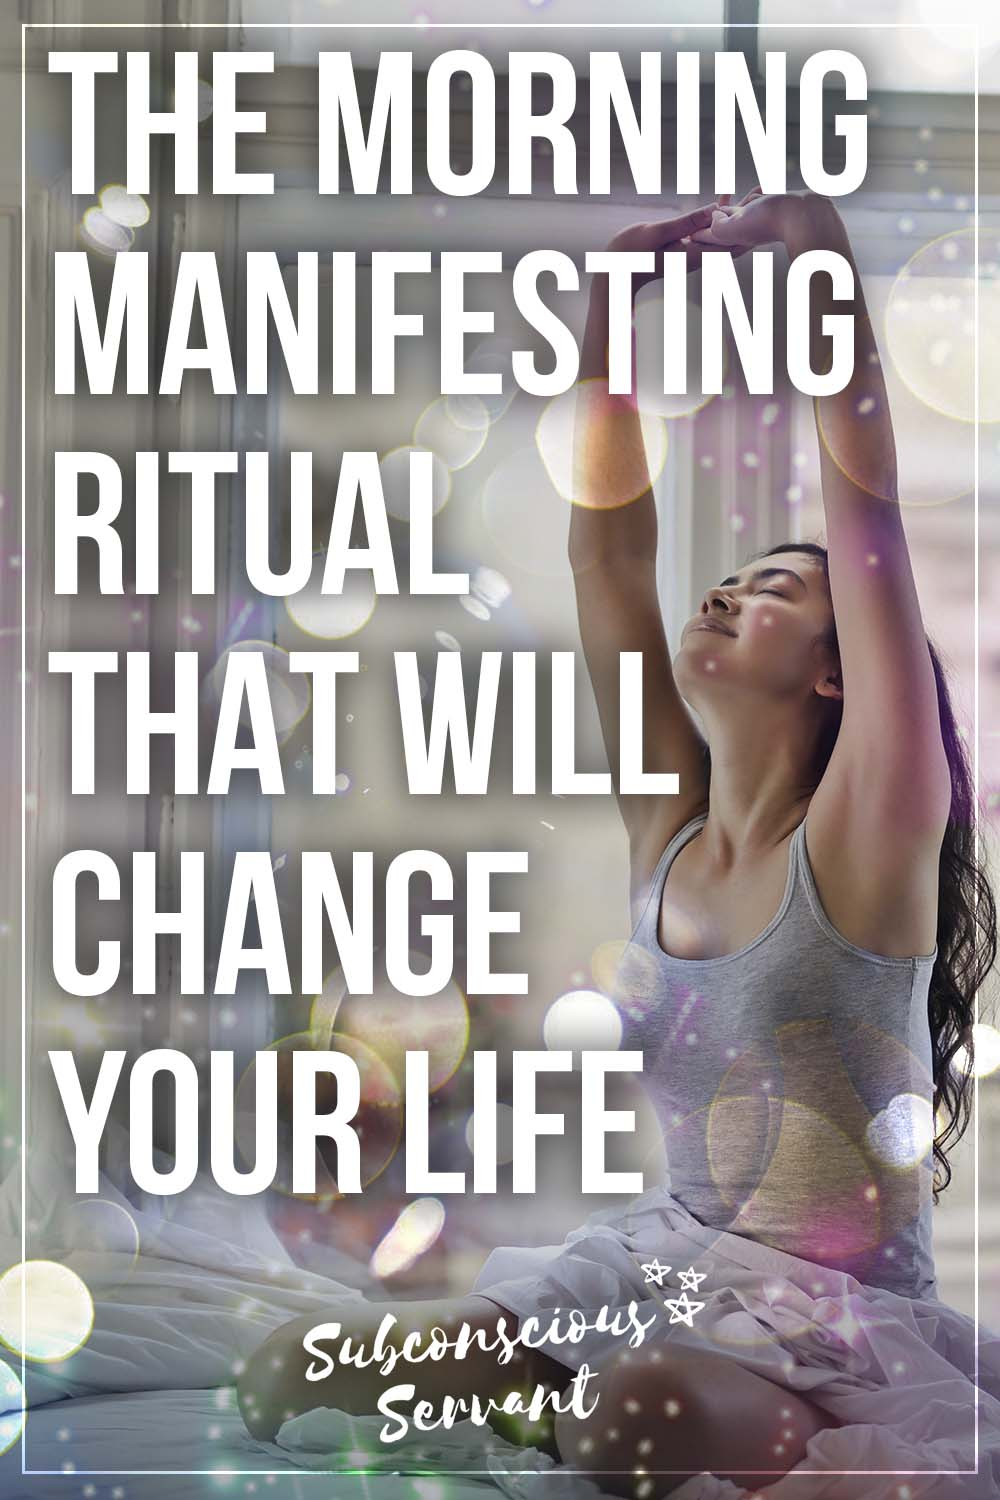 The Morning Manifesting Ritual That Will Change Your Life